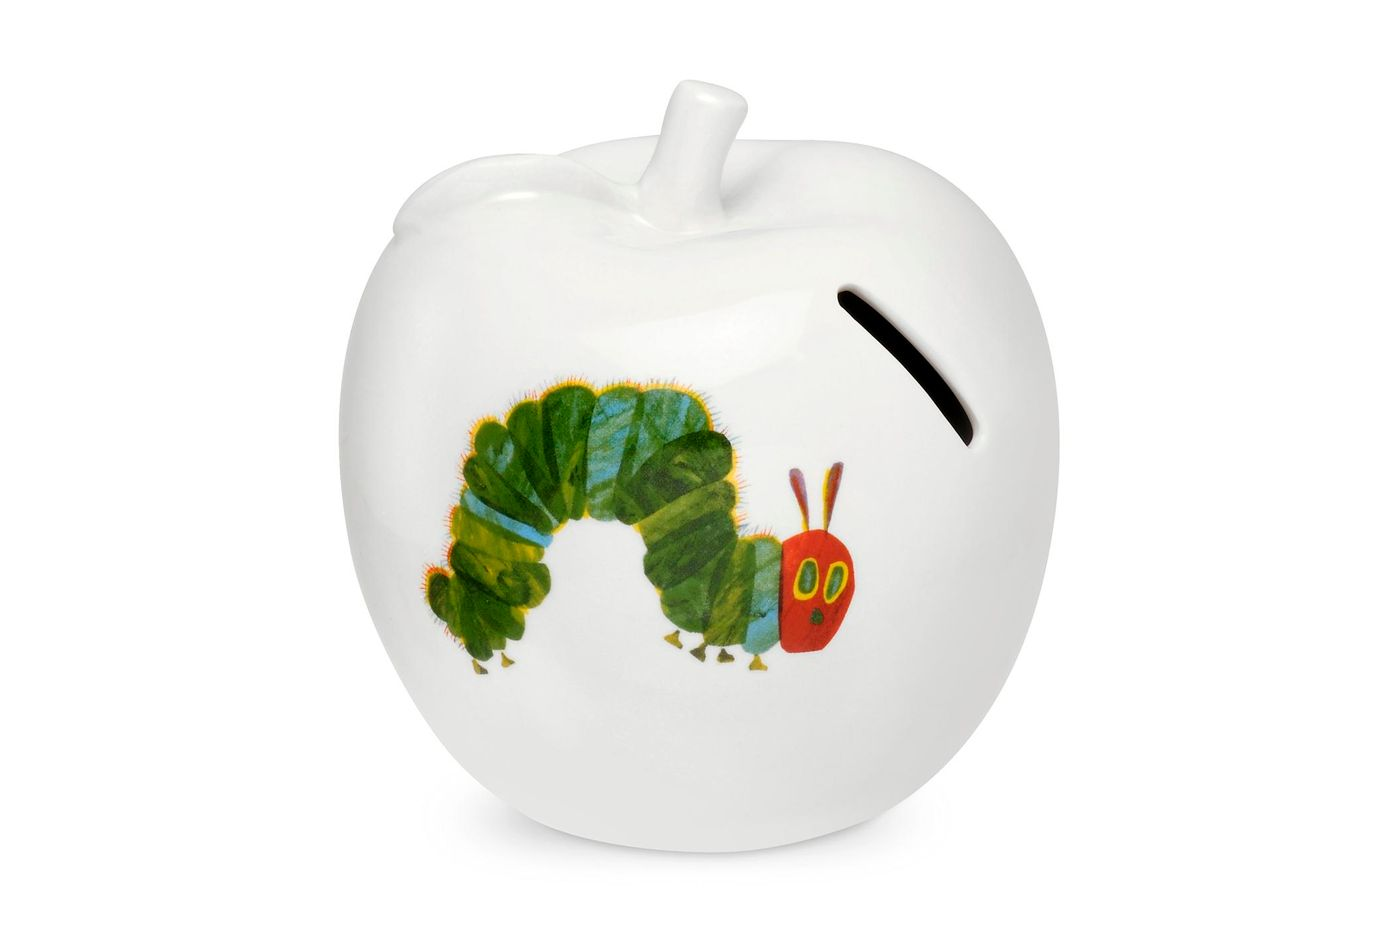 Portmeirion The Very Hungry Caterpillar by Eric Carle Money Box Apple thumb 1